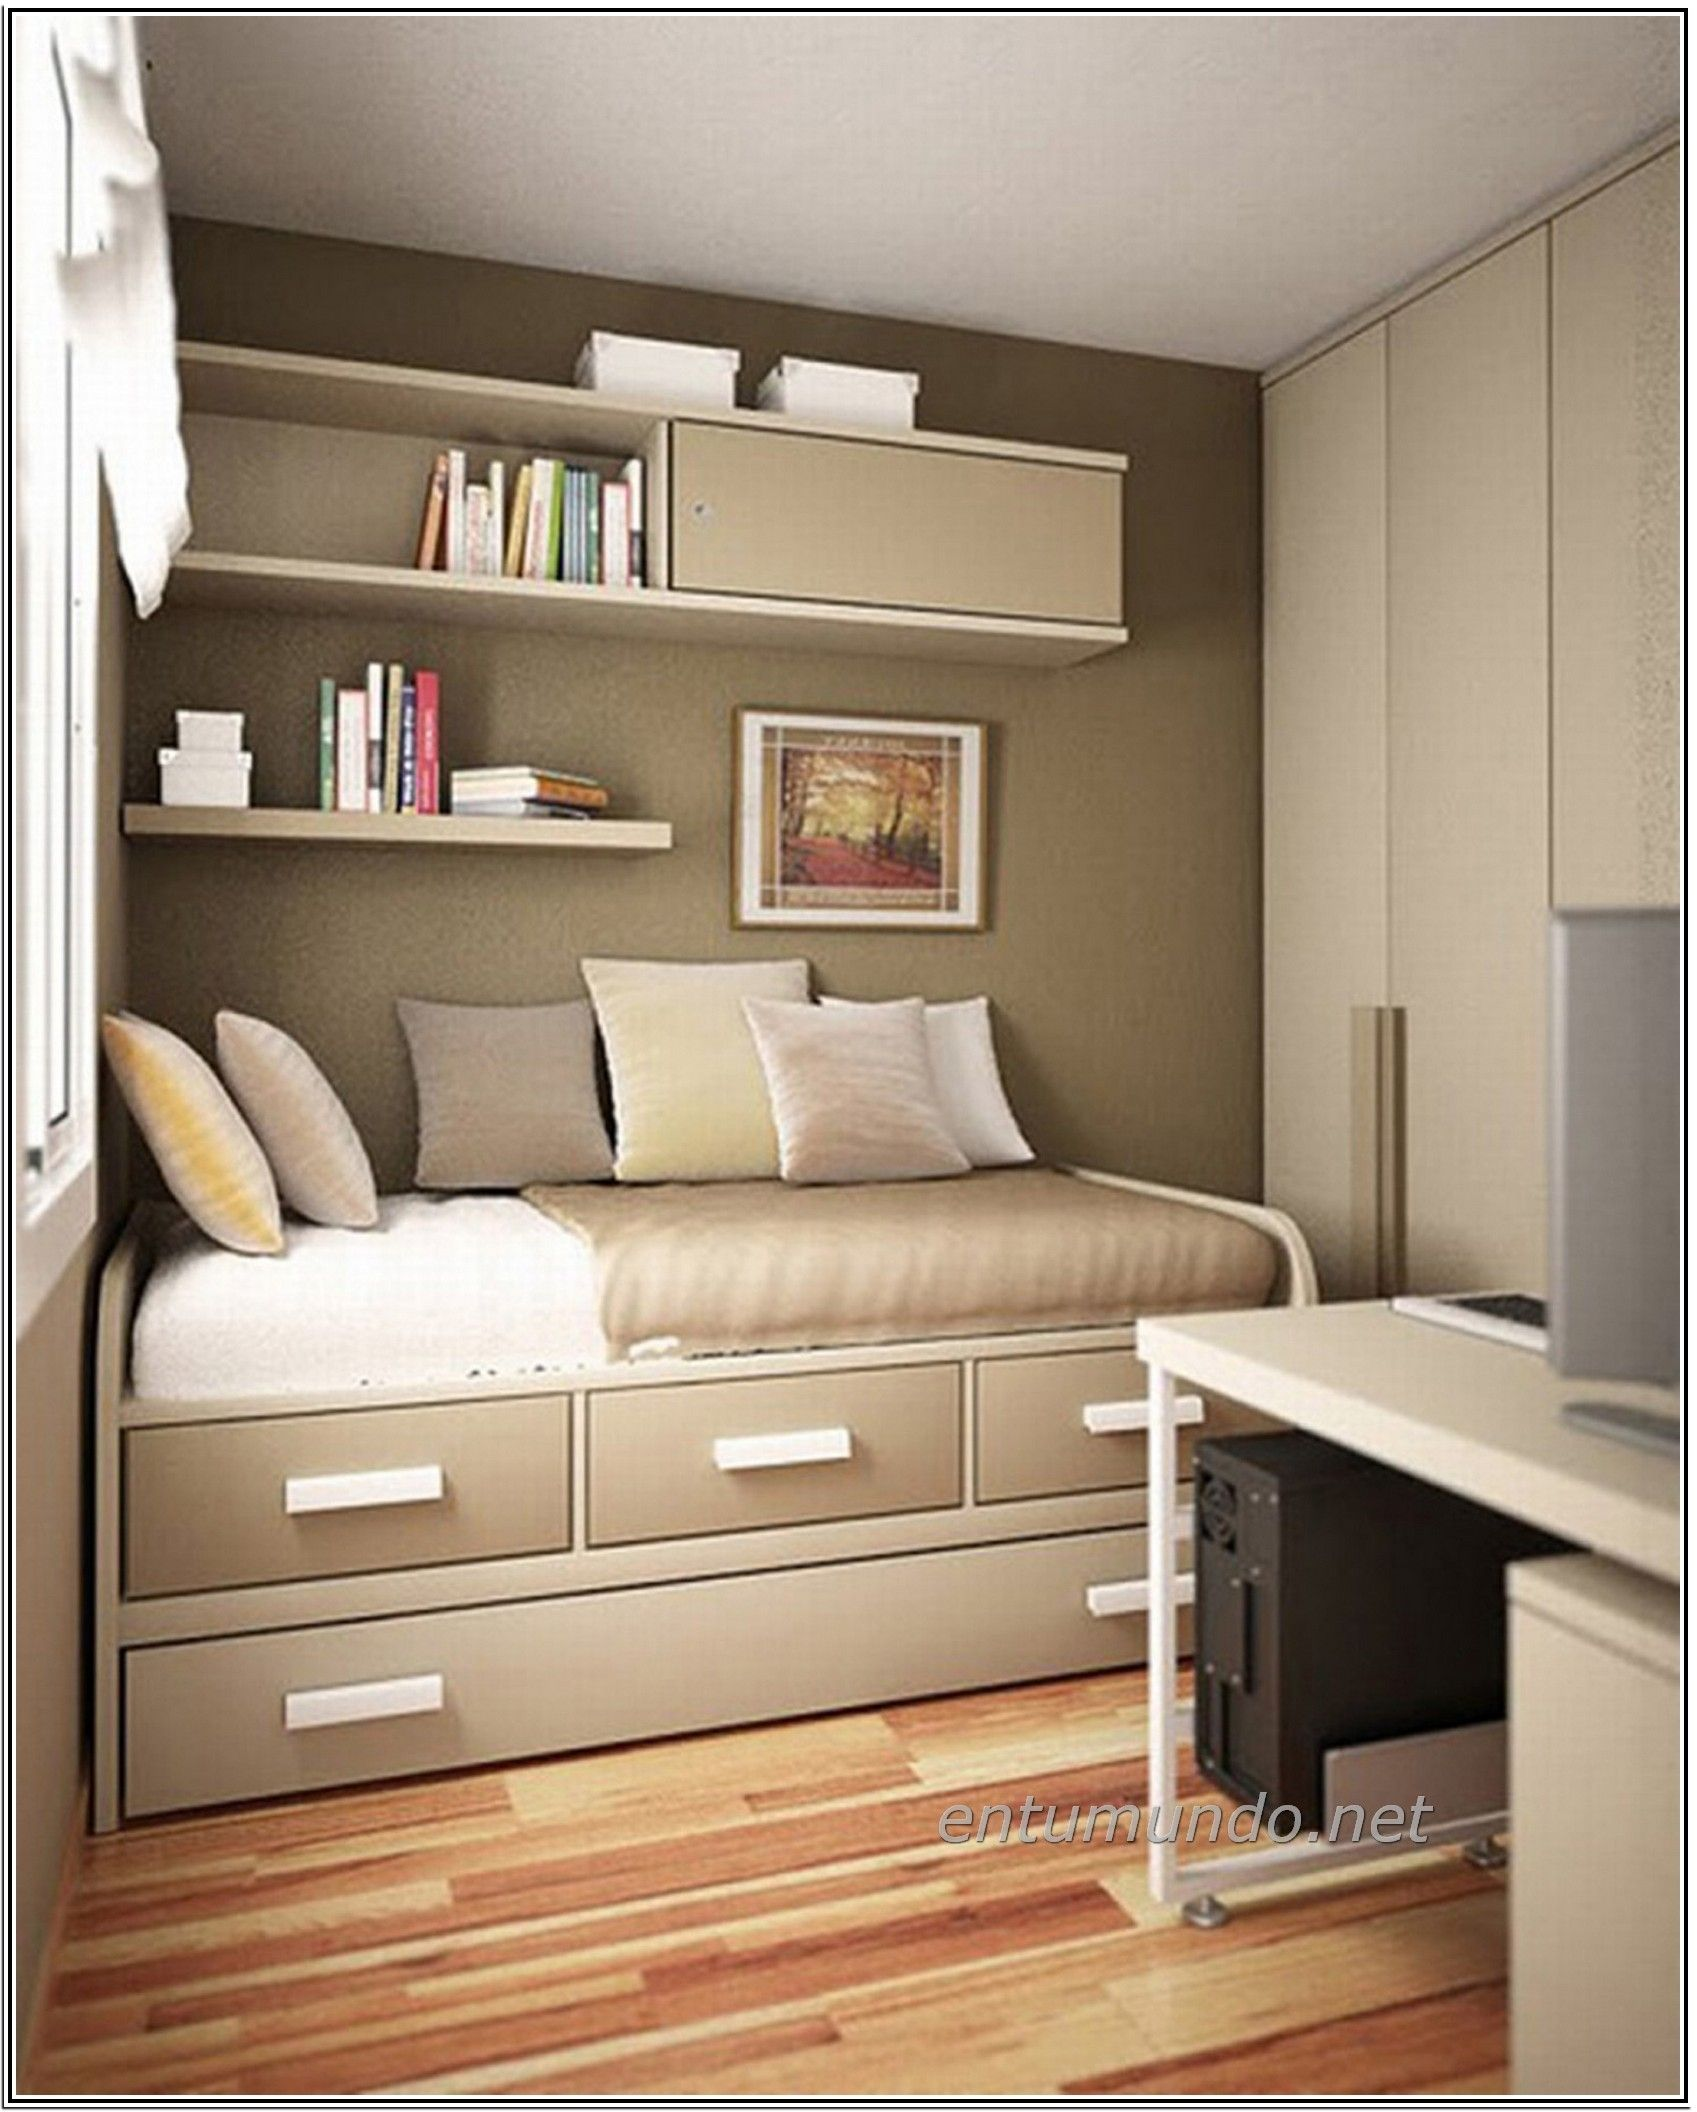 Small Bedroom Space Saver Ideas Small Bedroom Decor Small Space Bedroom Small Room Bedroom